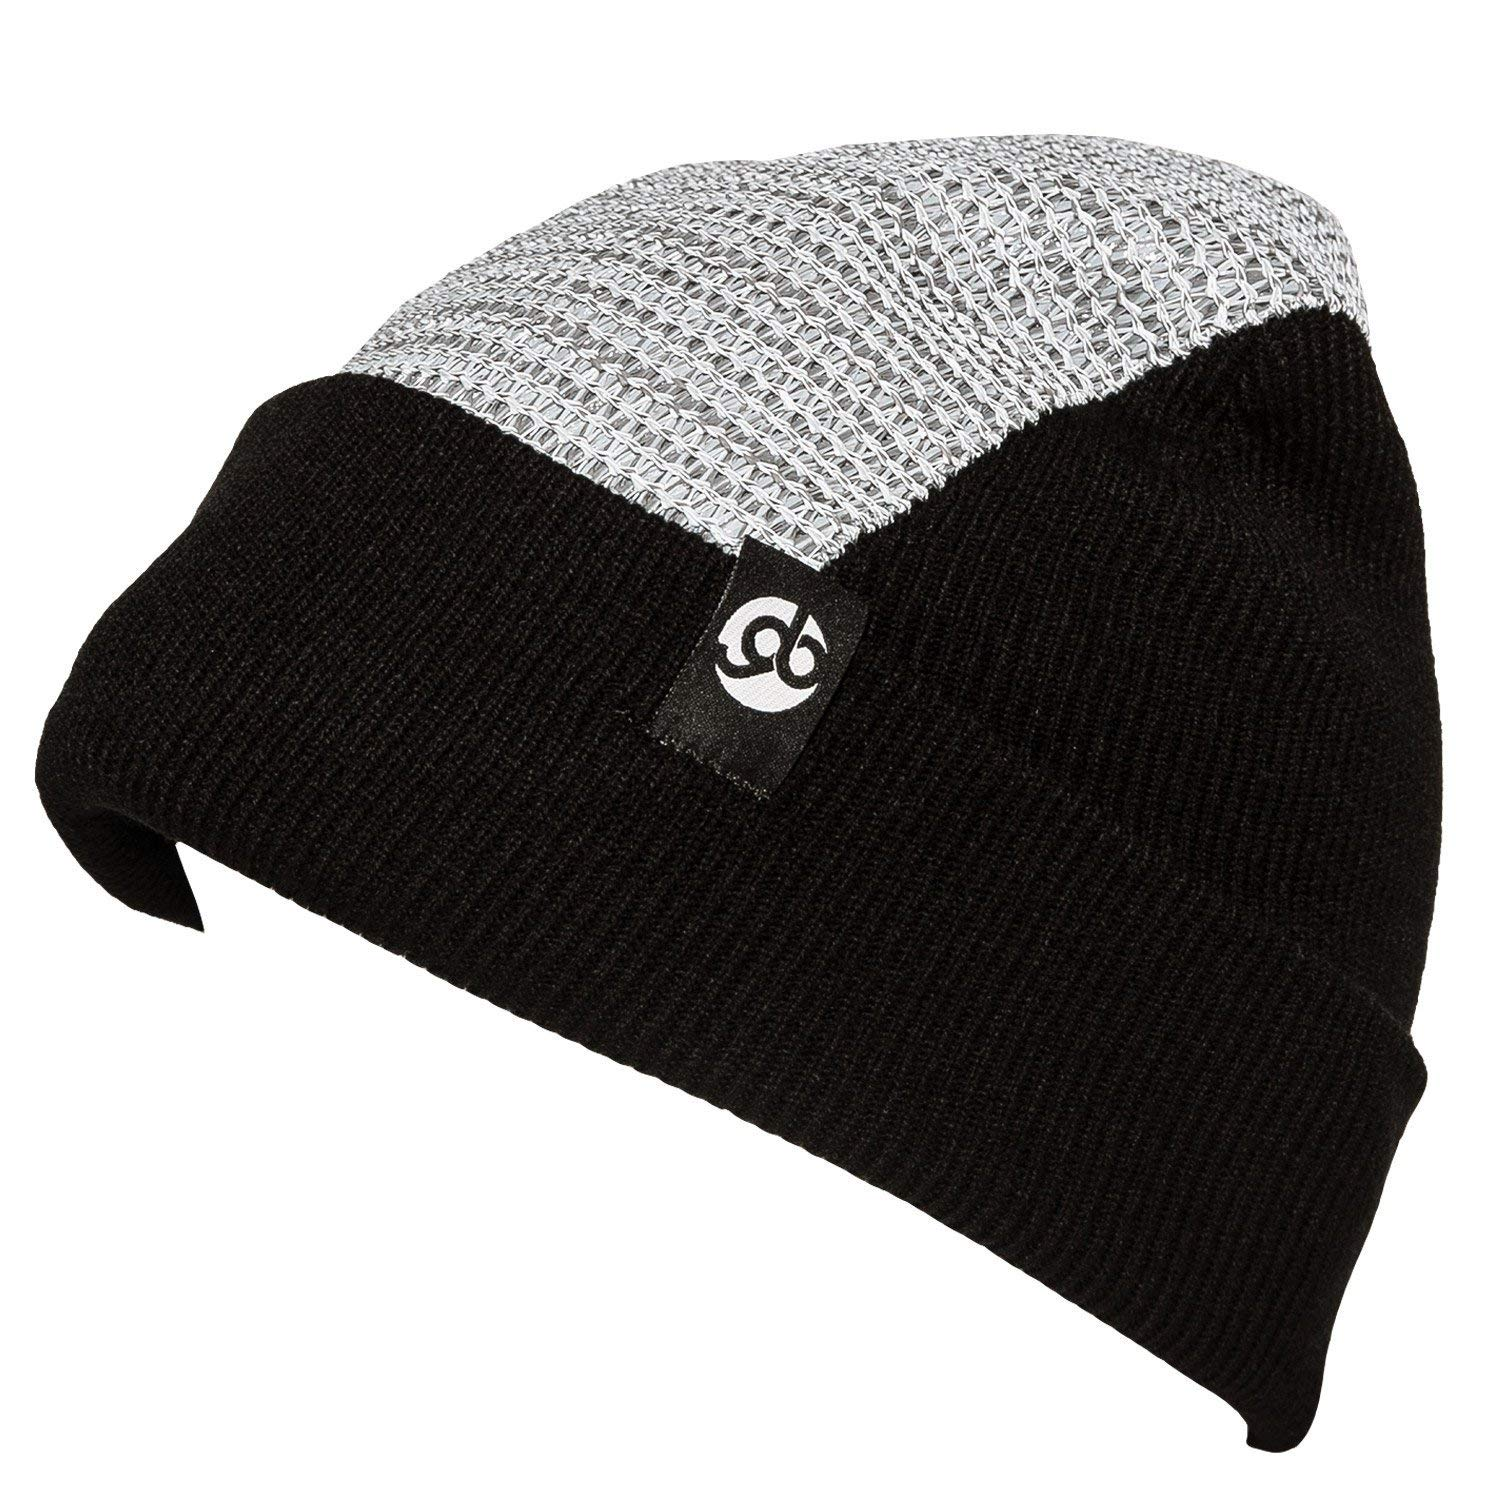 d768f5c5e12 Generation BBOY Headspin Beanie Elite Grey Mesh - The Classic Bboy Spin Cap